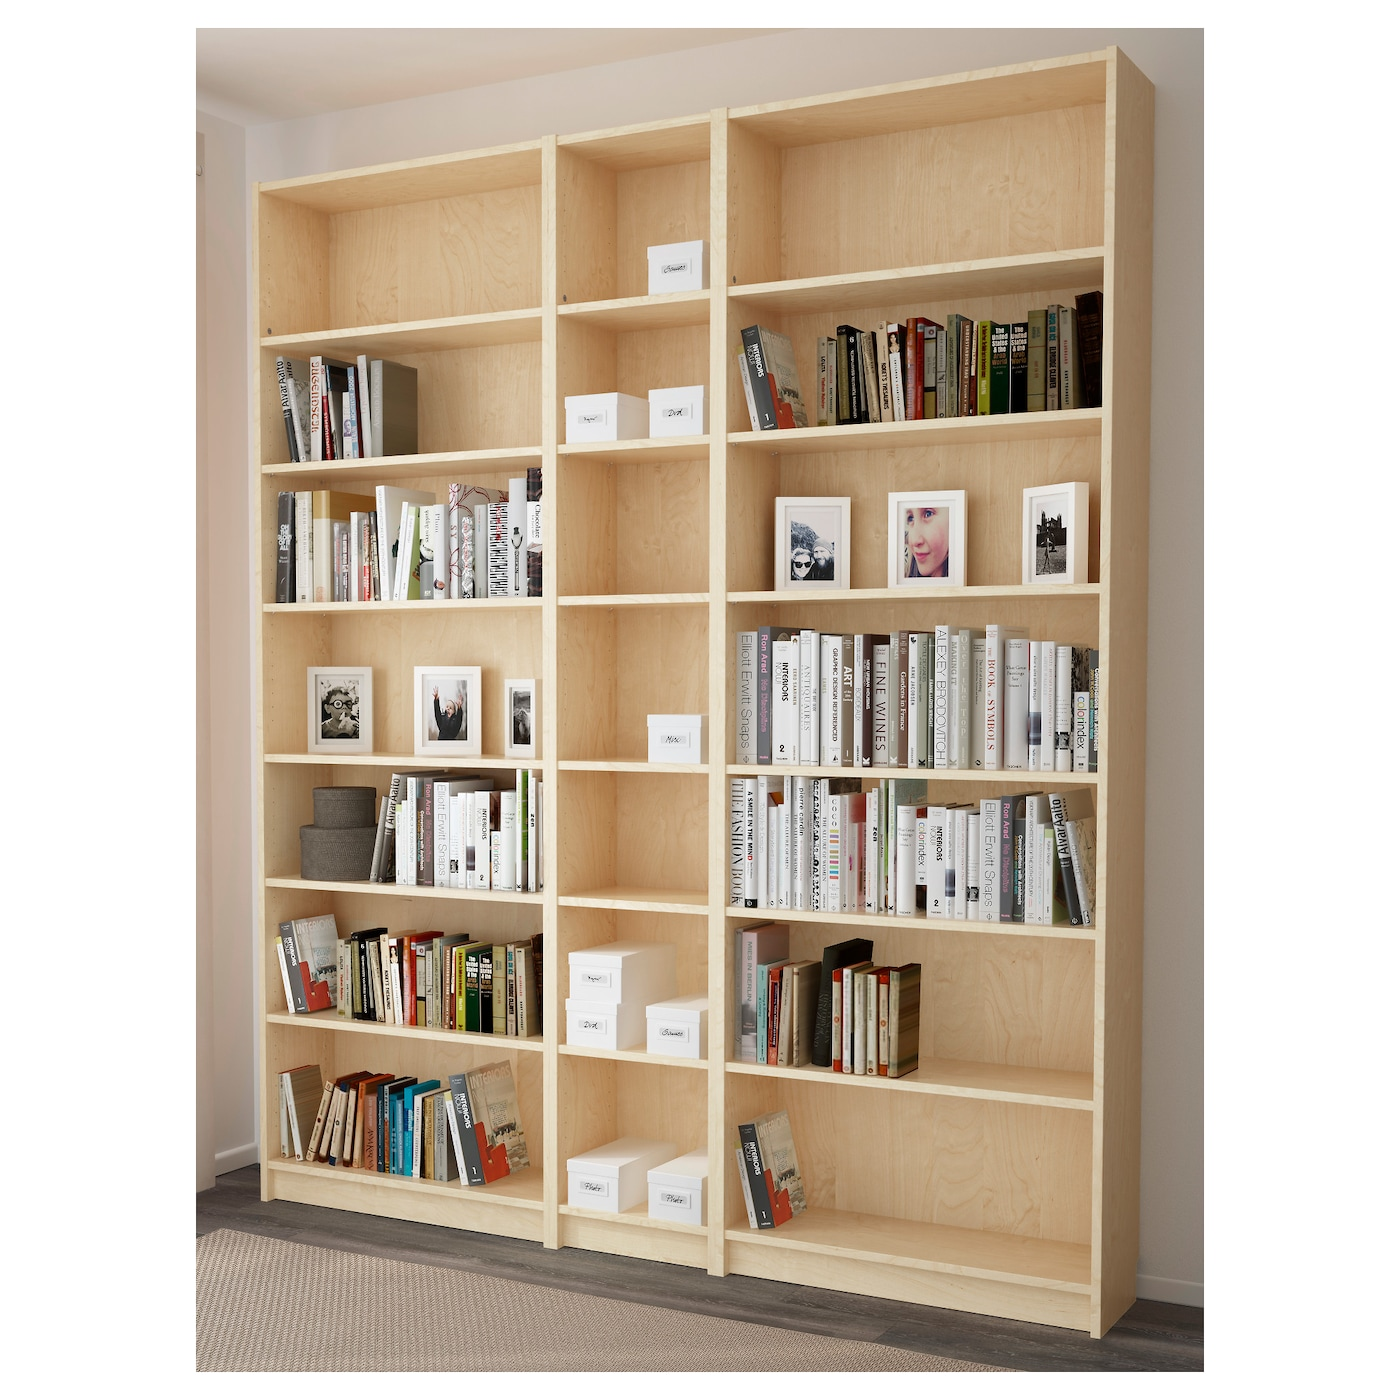 Ikea Billy Bookcase Adjule Shelves So You Can Customise Your Storage As Needed